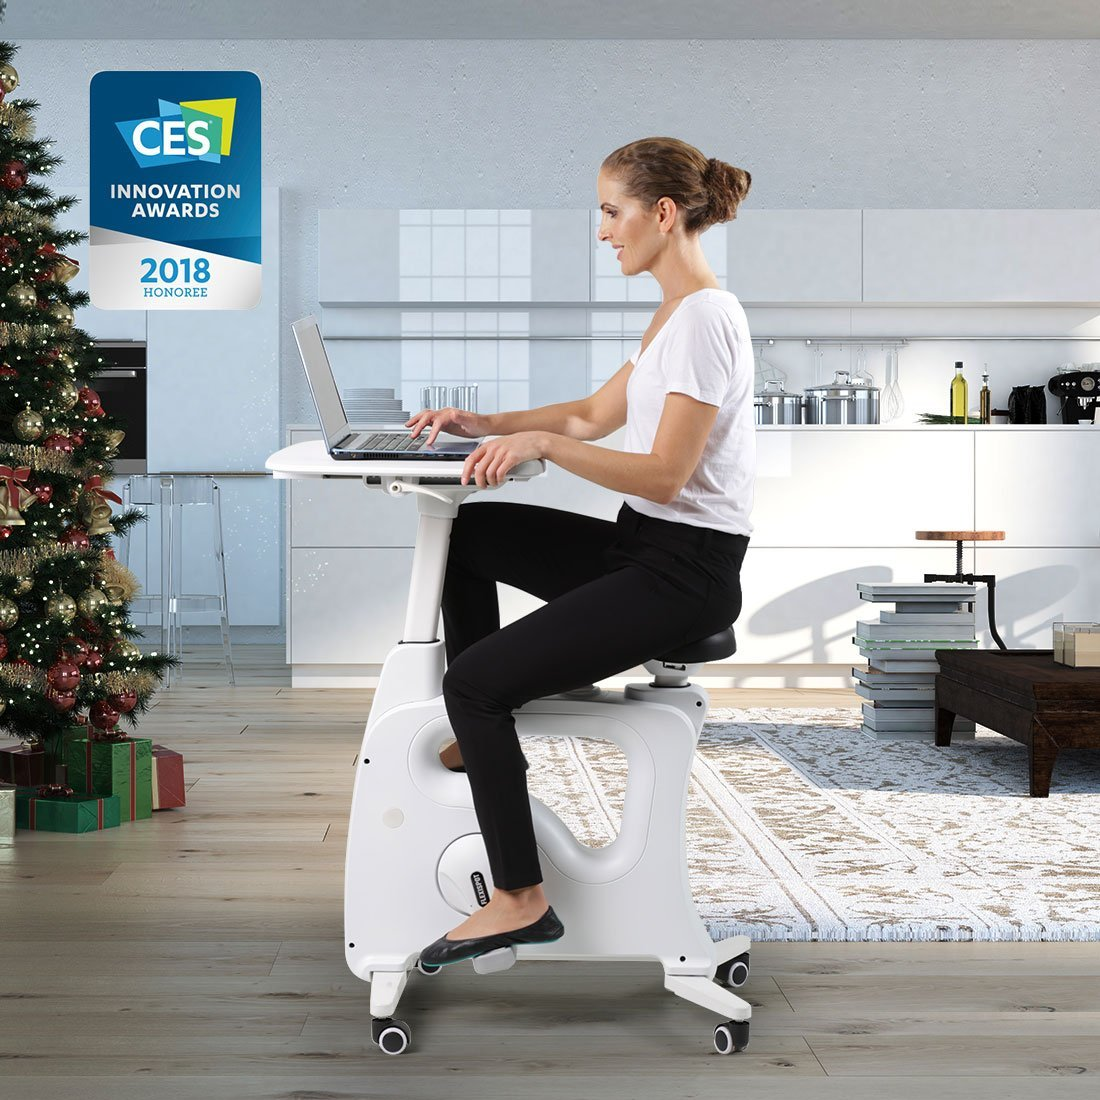 Flexispot Ces Innovation Awards Home Office Exercise Bike Deskcise Pro Review Featured on Best Zero Gravity Chair Review